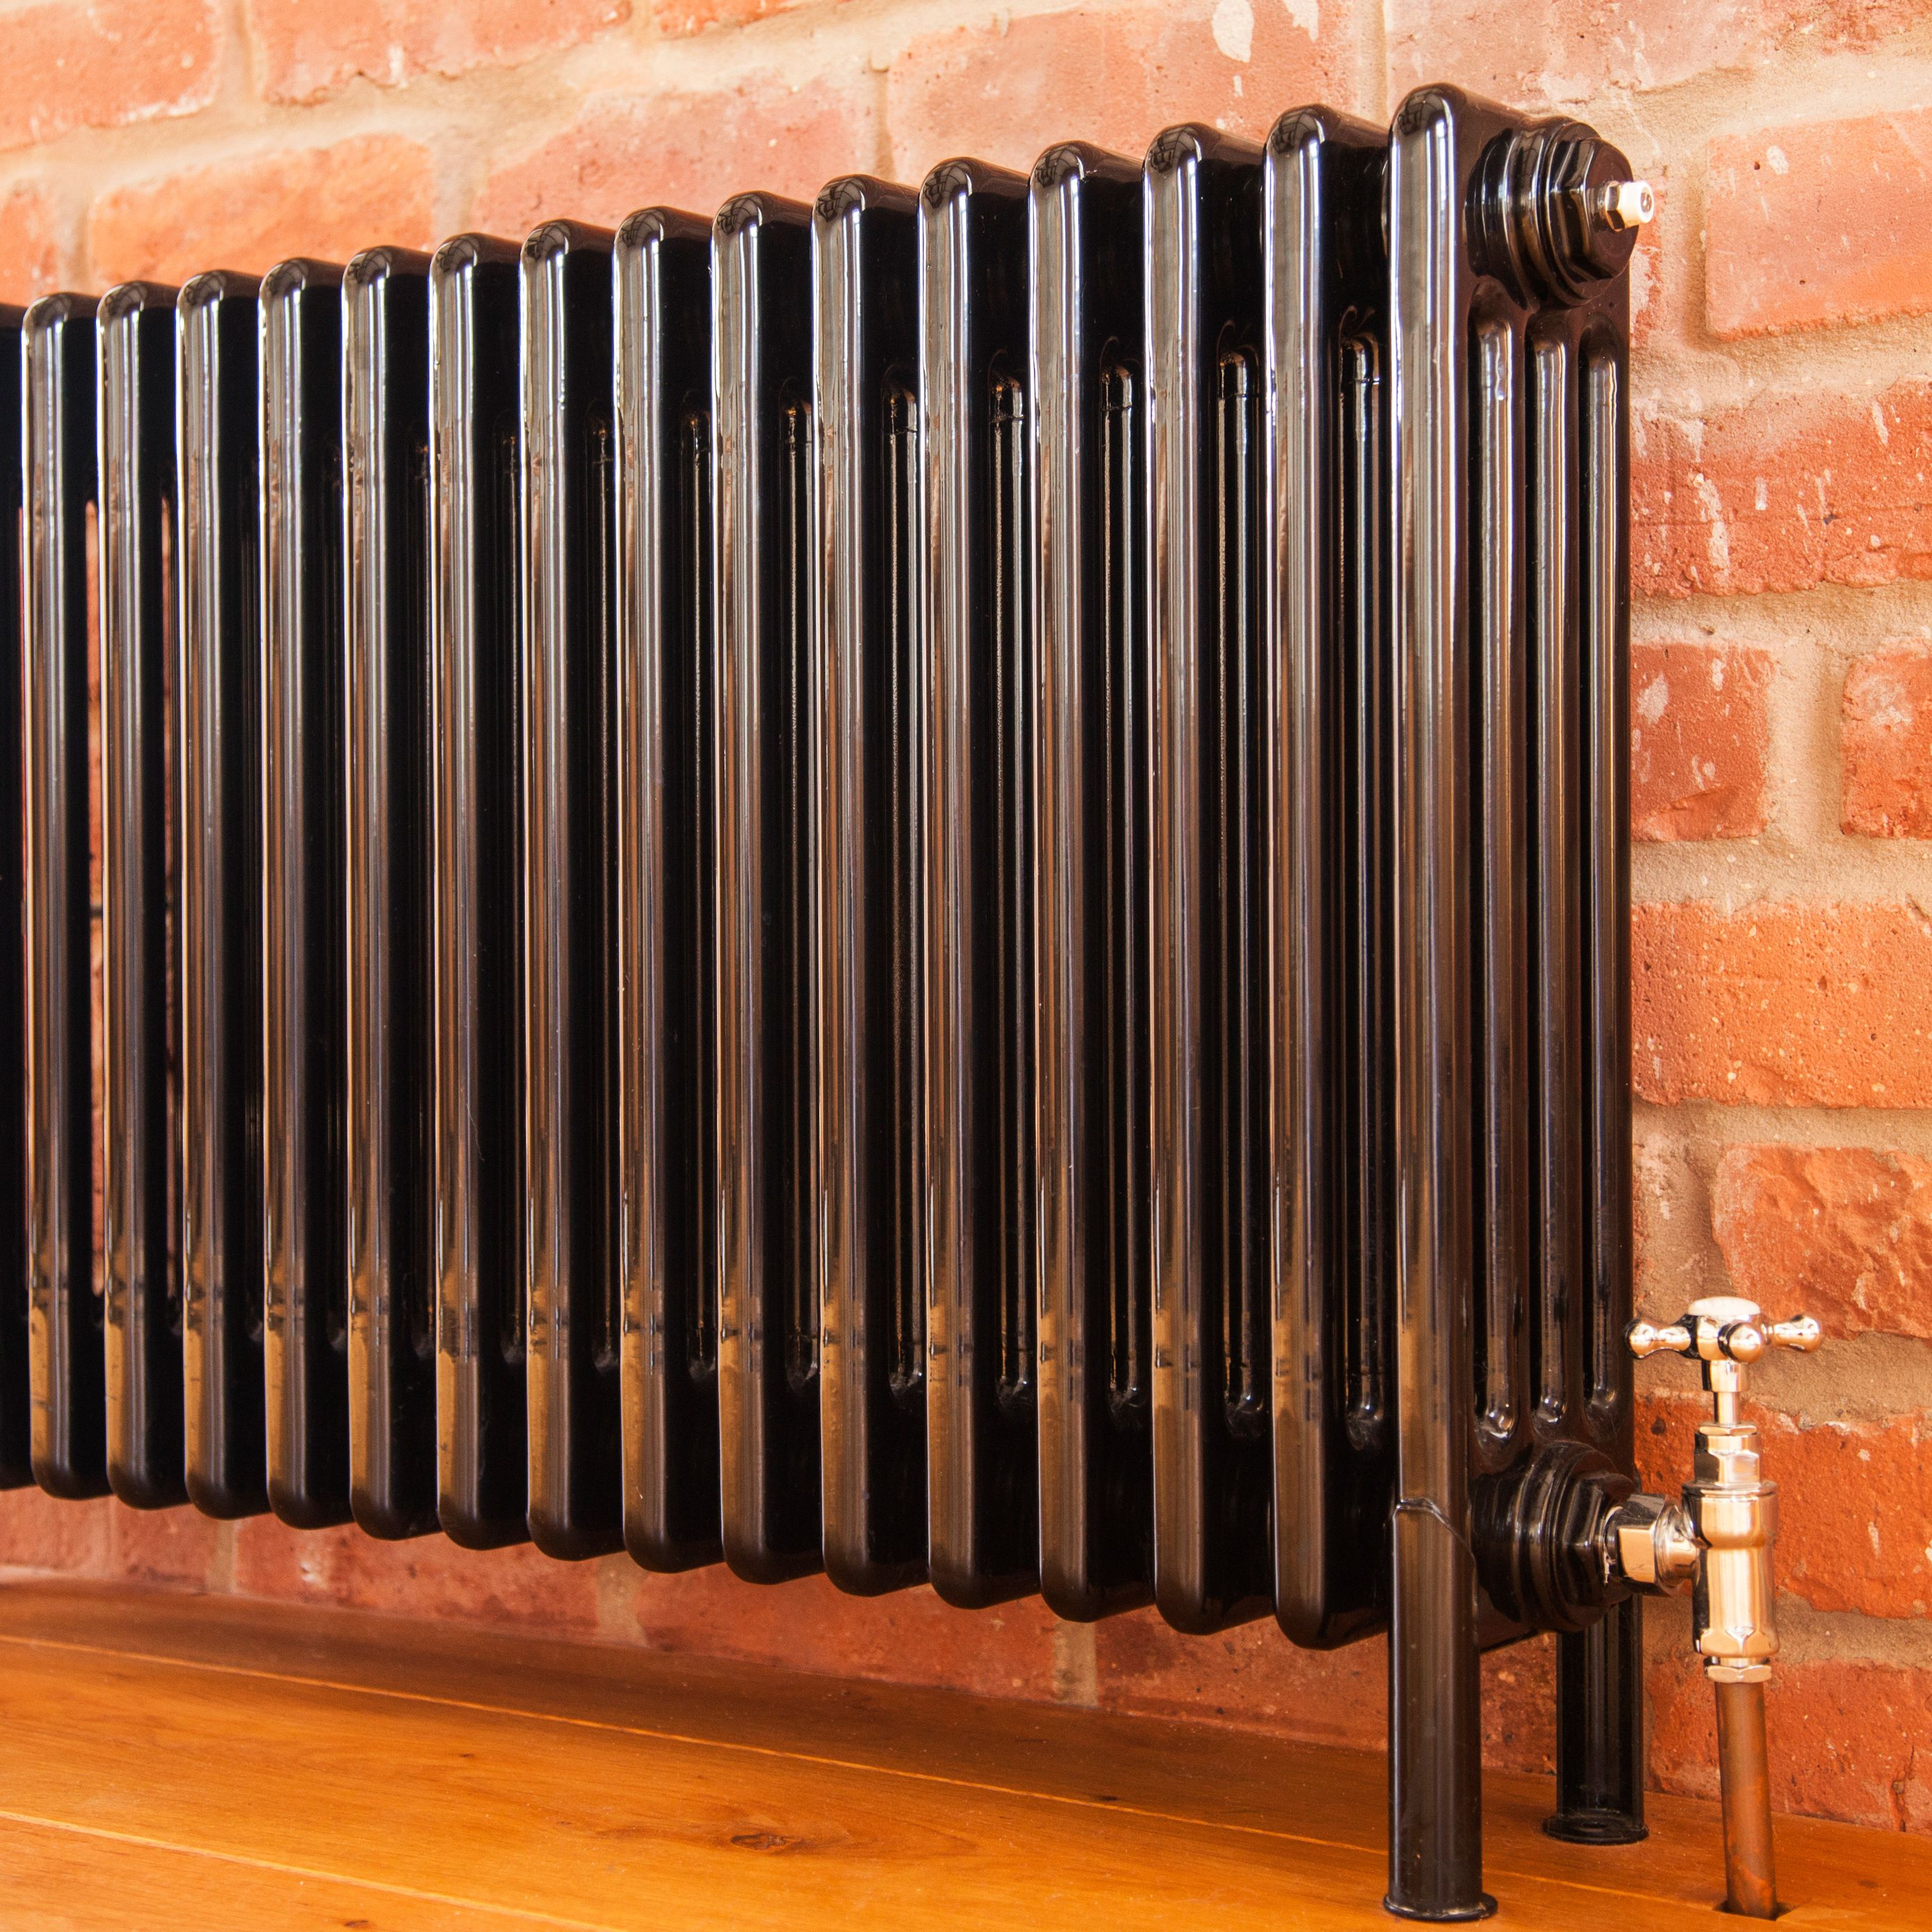 How To Clean A Steam Radiator Air Vent